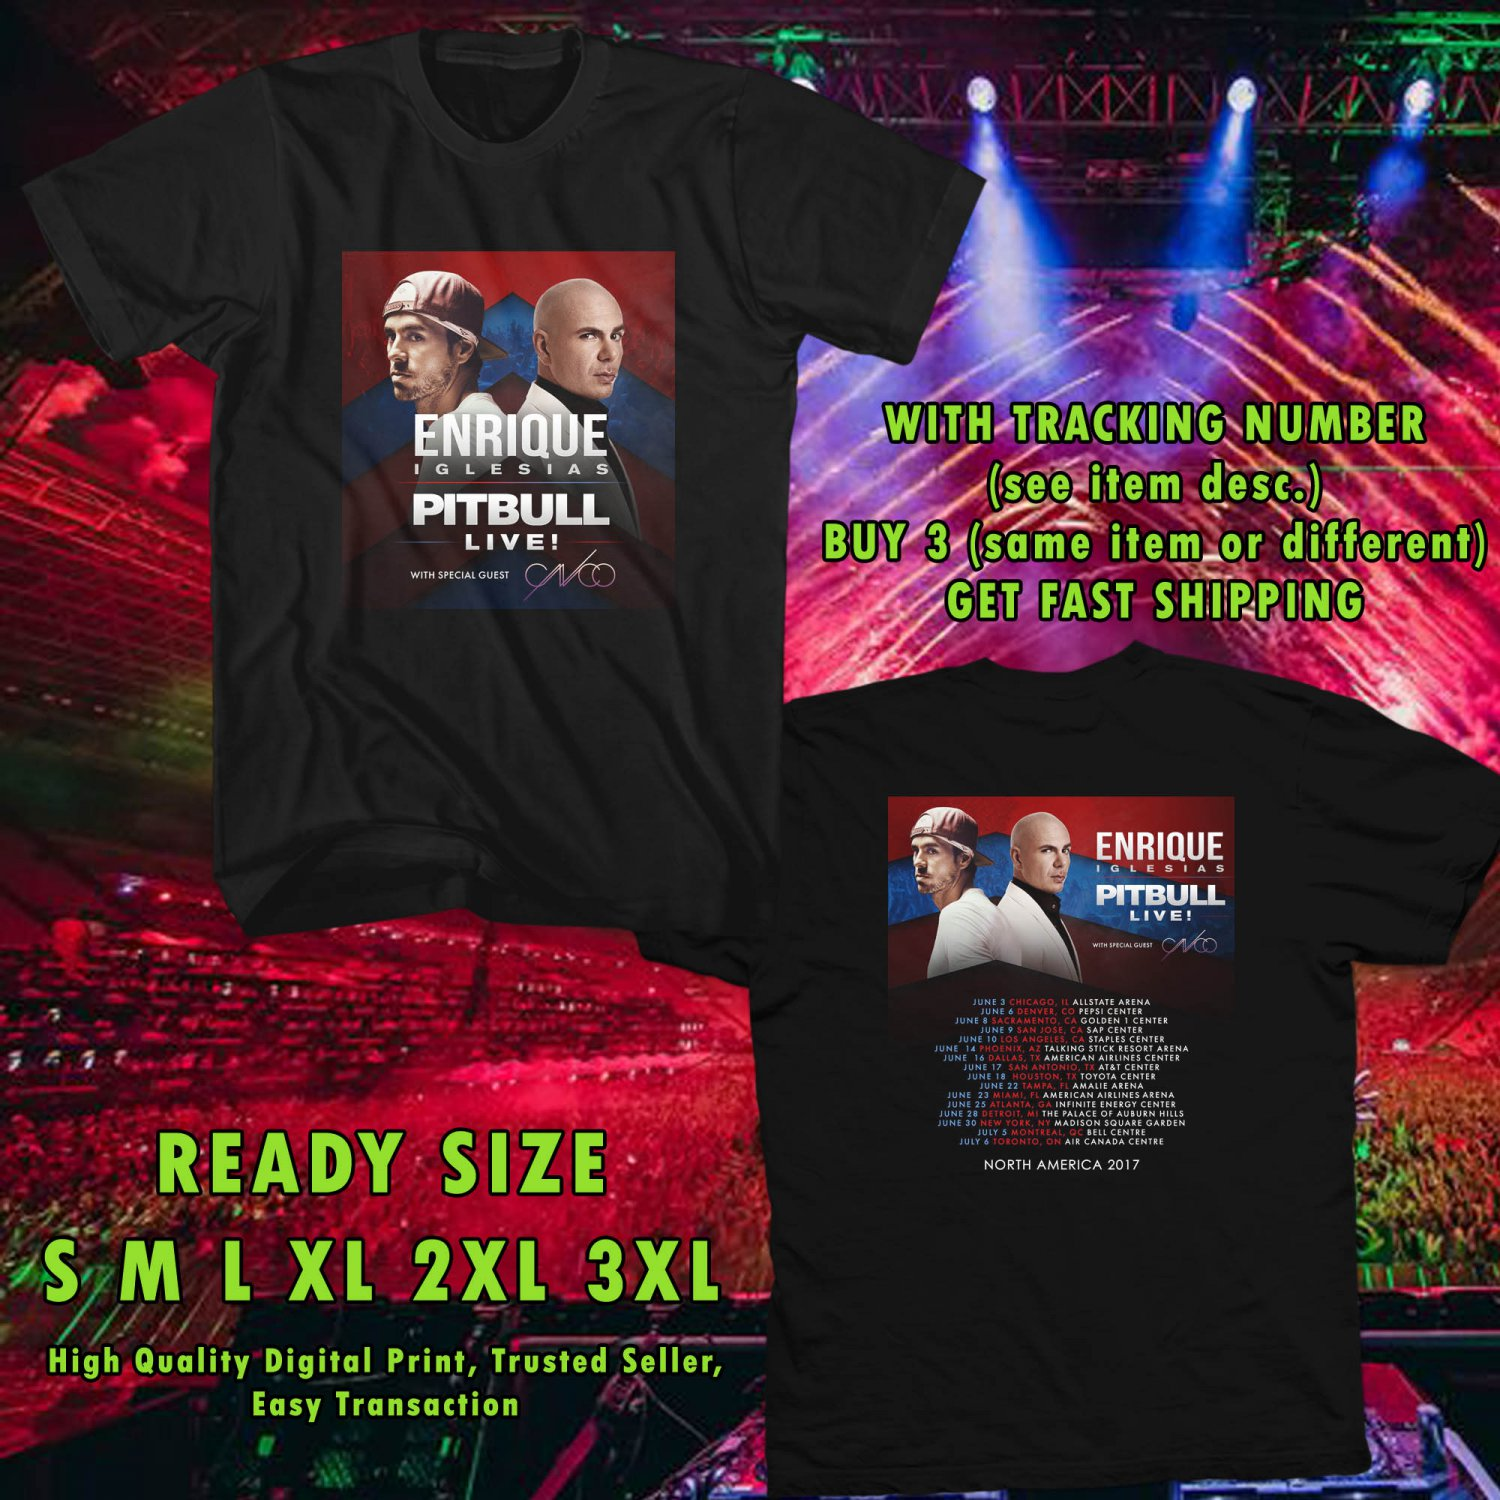 NEW ENRIQUE IGLESIAS AND PITBULL IVE N.AMERICA TOUR 2017 BLACK TEE 2 SIDE DMTR 221